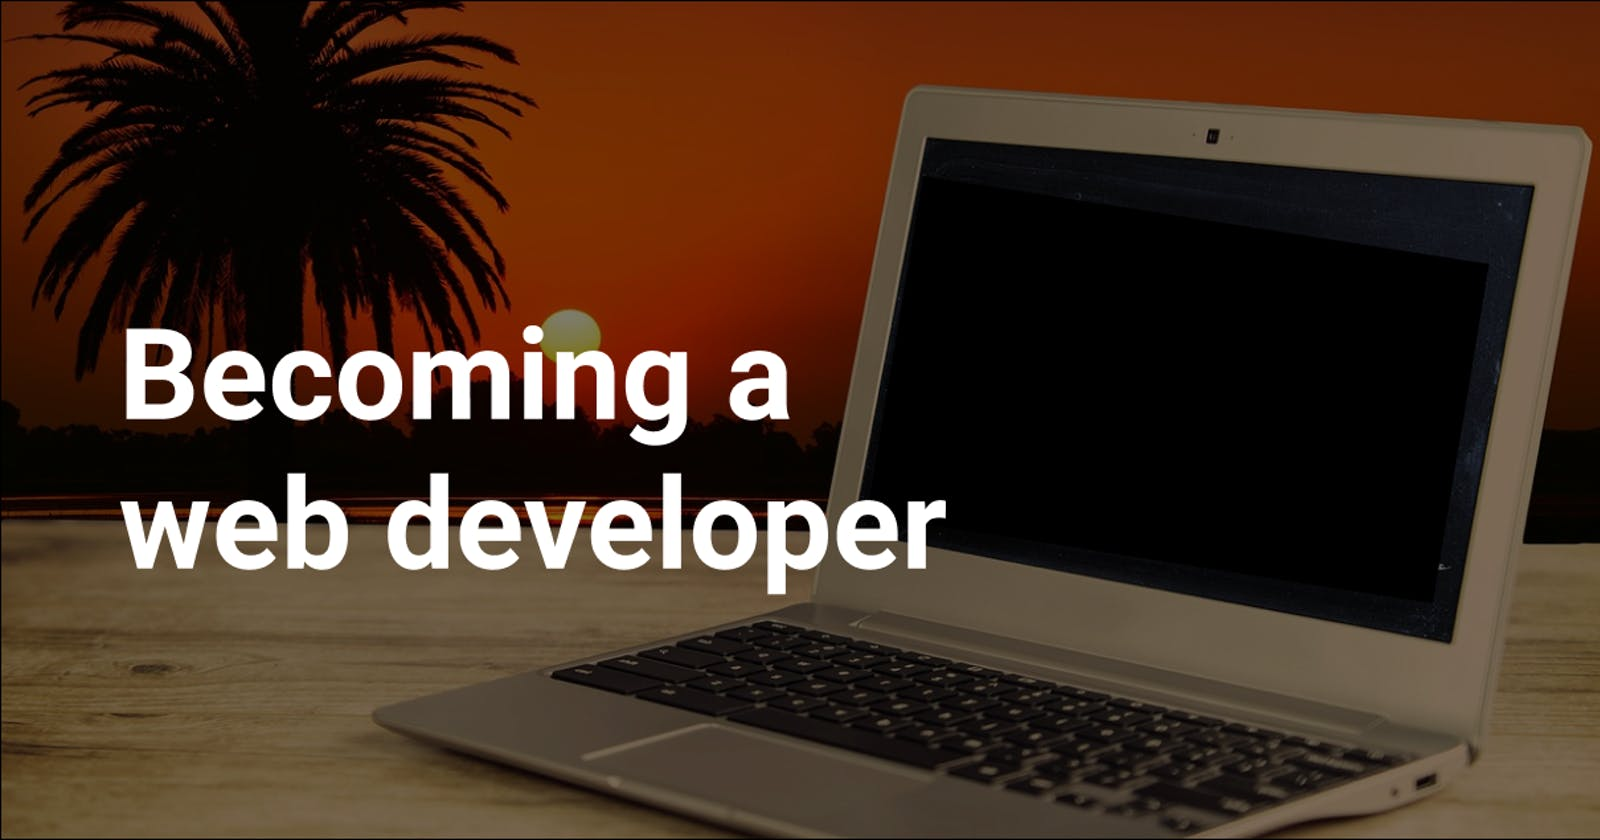 So, you want to become a web developer? Here are the lessons I learned along the way